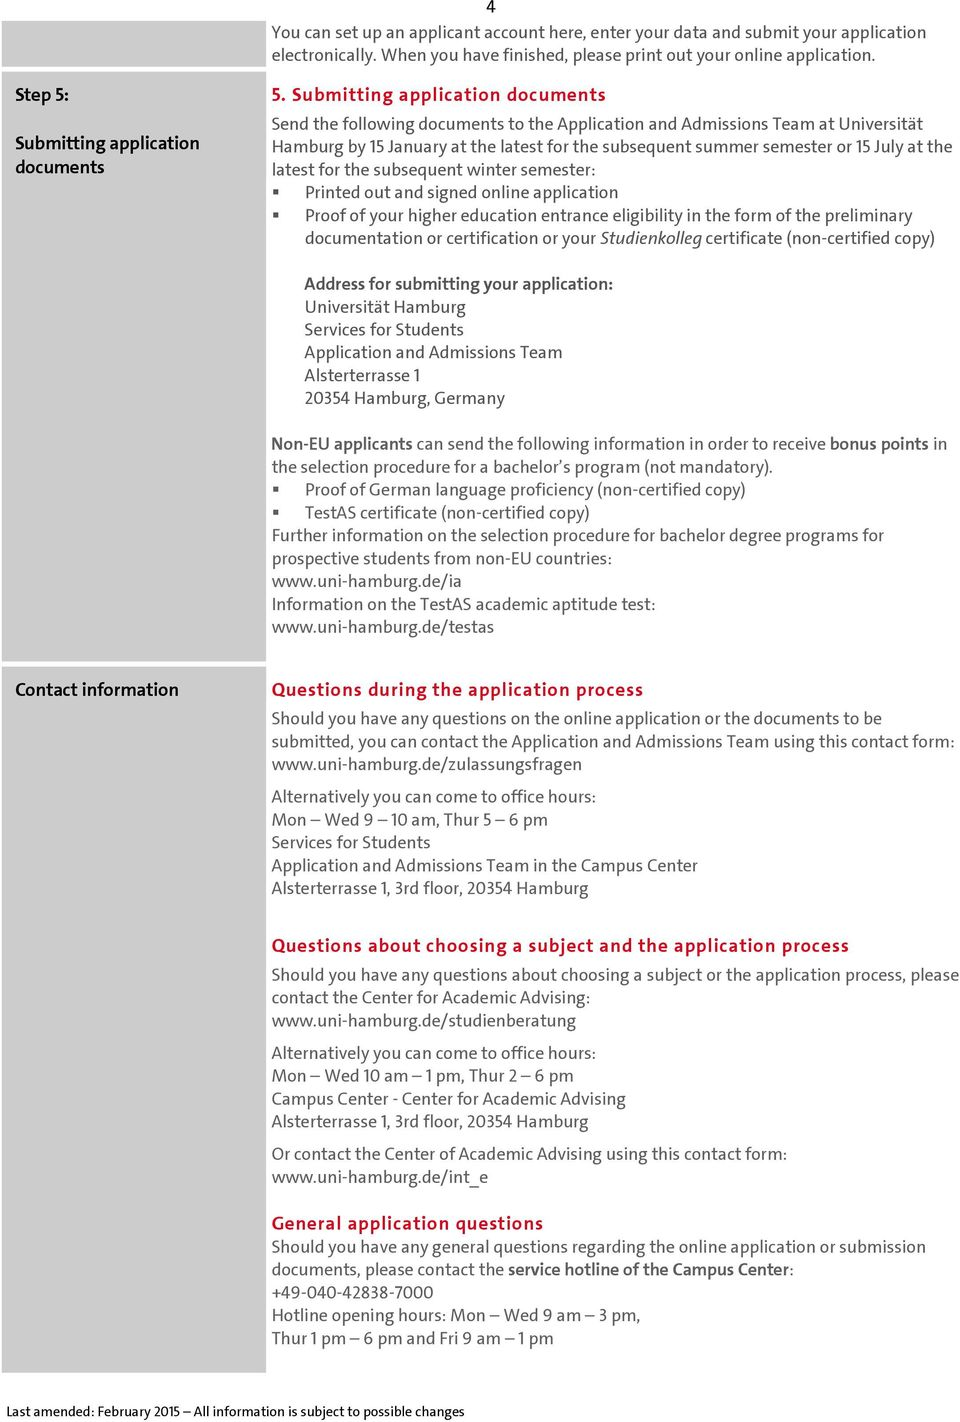 Submitting application documents Send the following documents to the Application and Admissions Team at Universität Hamburg by 15 January at the latest for the subsequent summer semester or 15 July